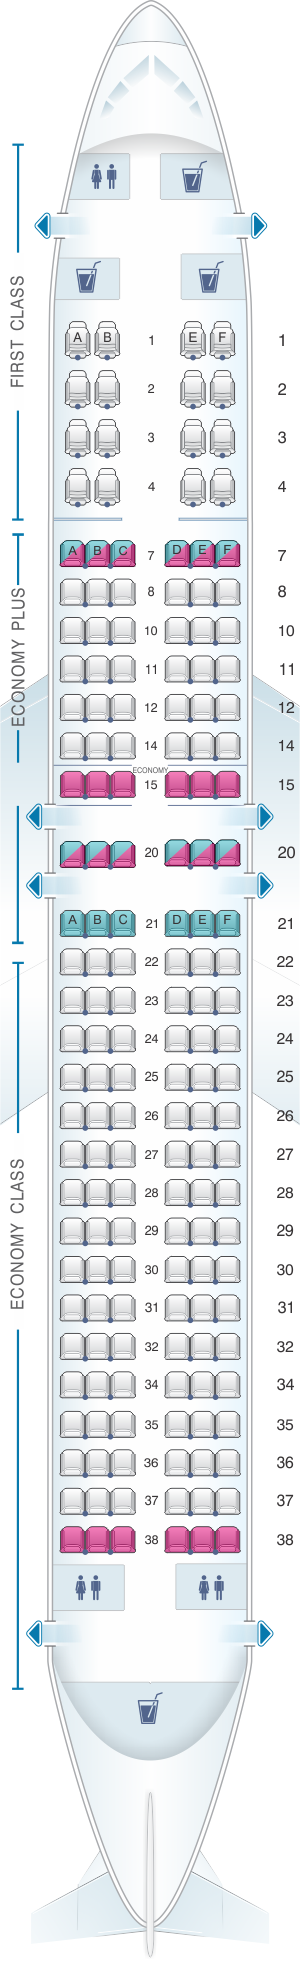 Seat map for United Airlines Boeing B737 800 - version 2